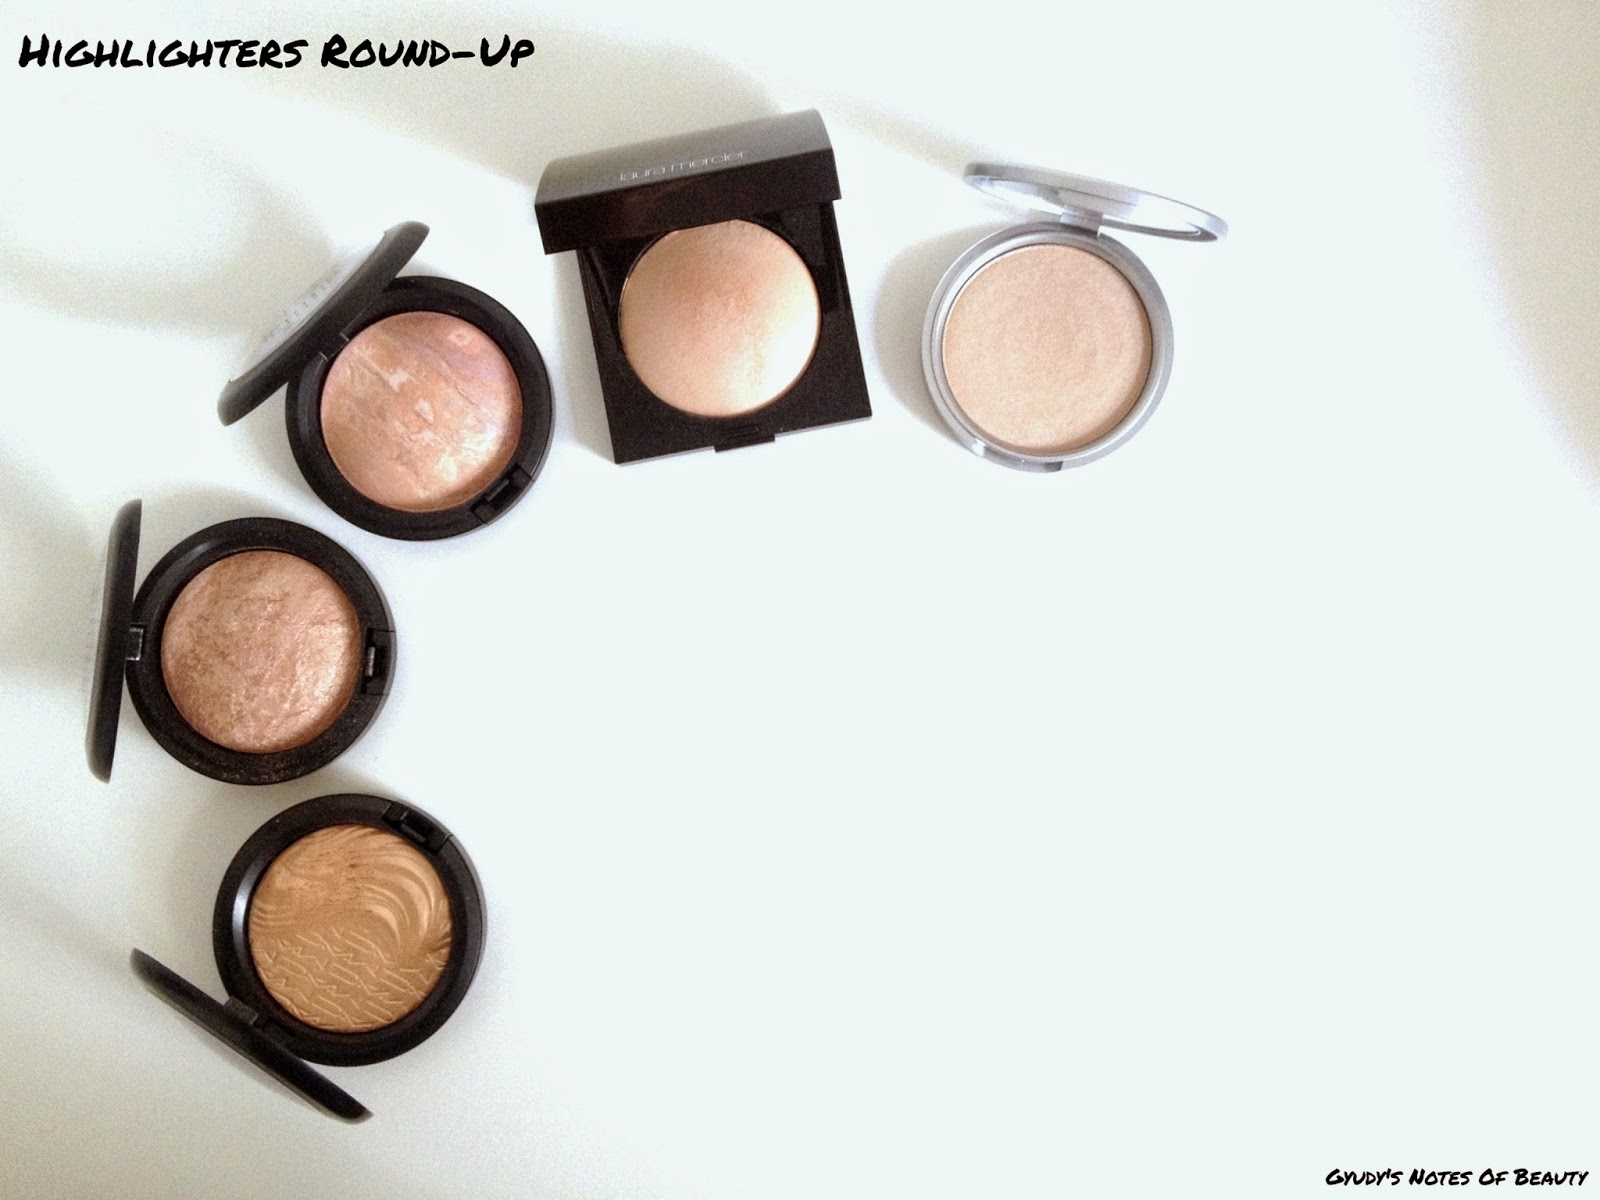 Highlighters Round-Up